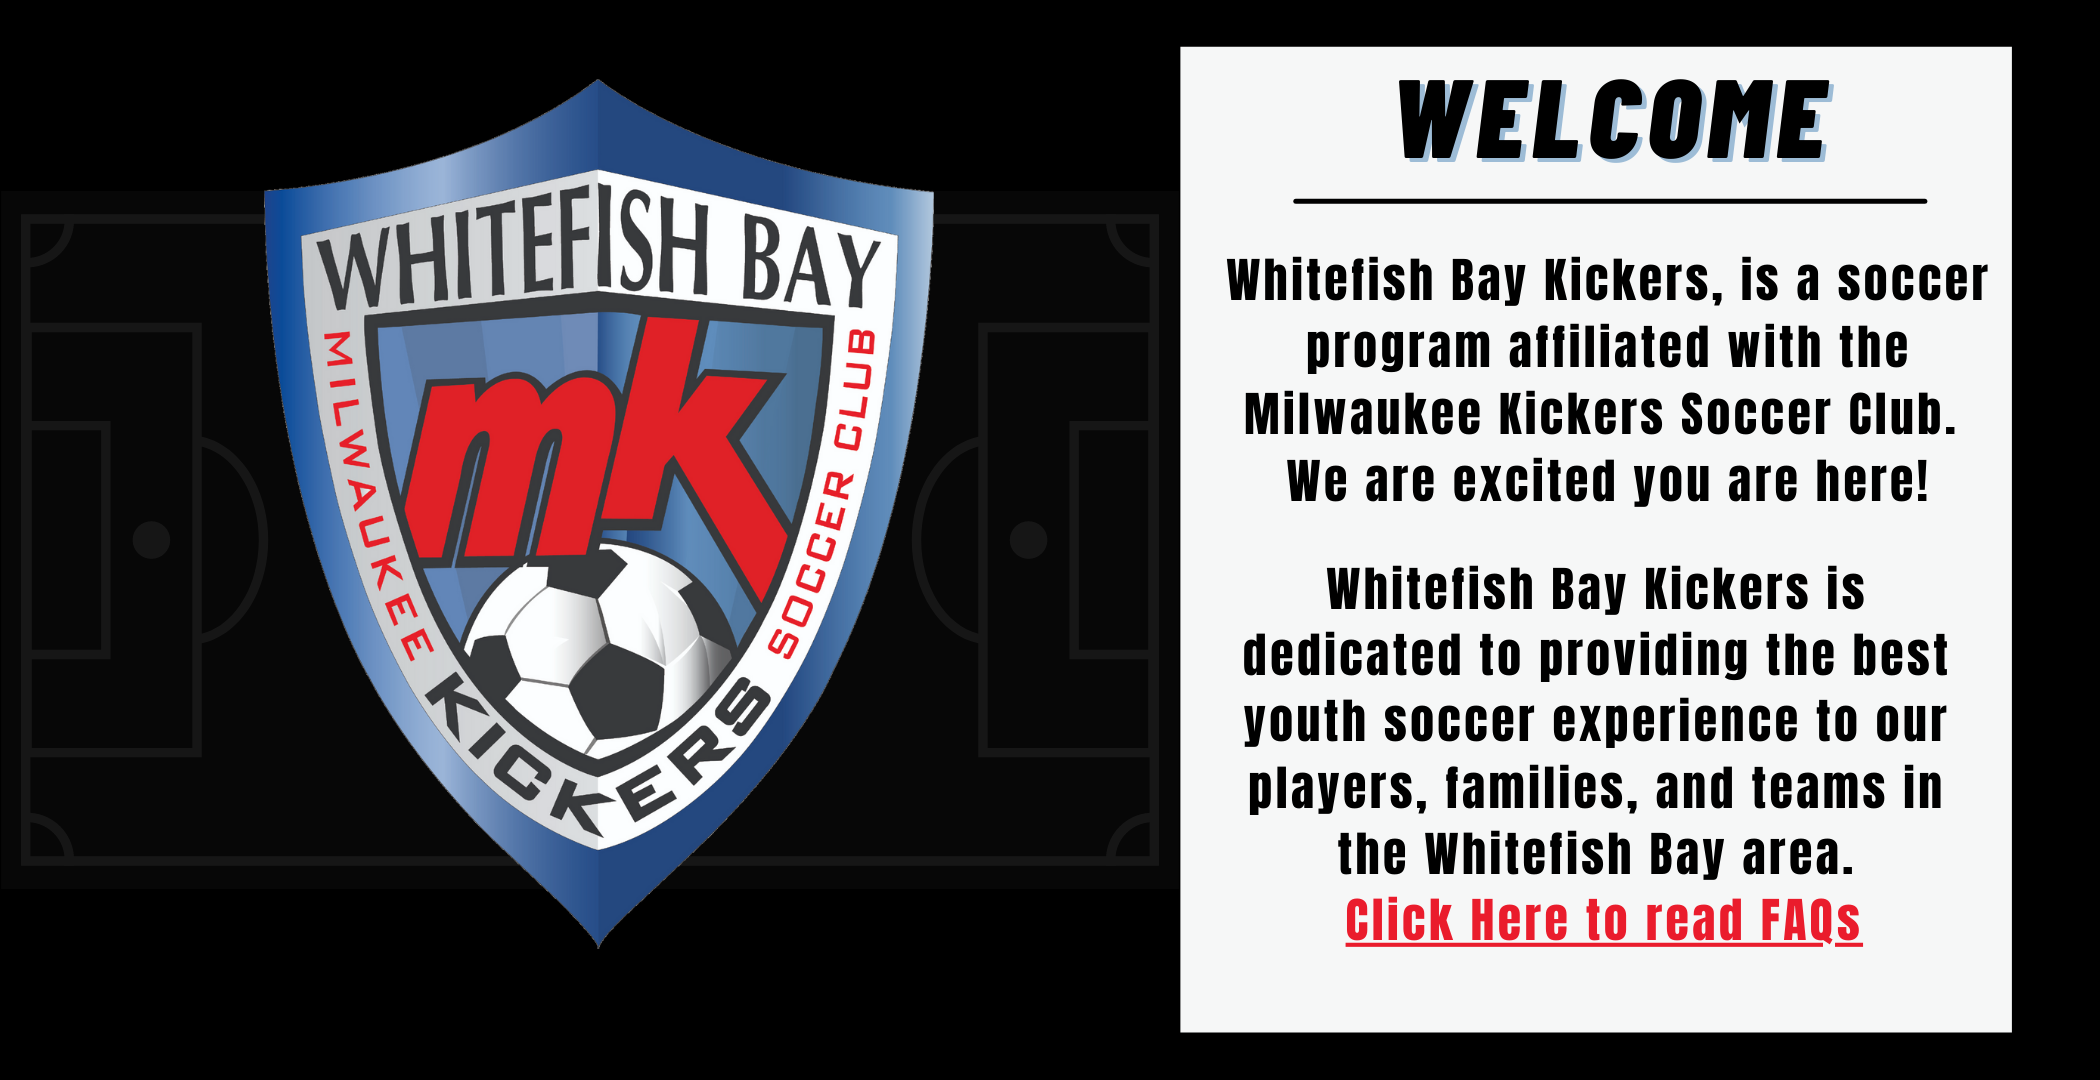 Welcome to Whitefish Bay Kickers